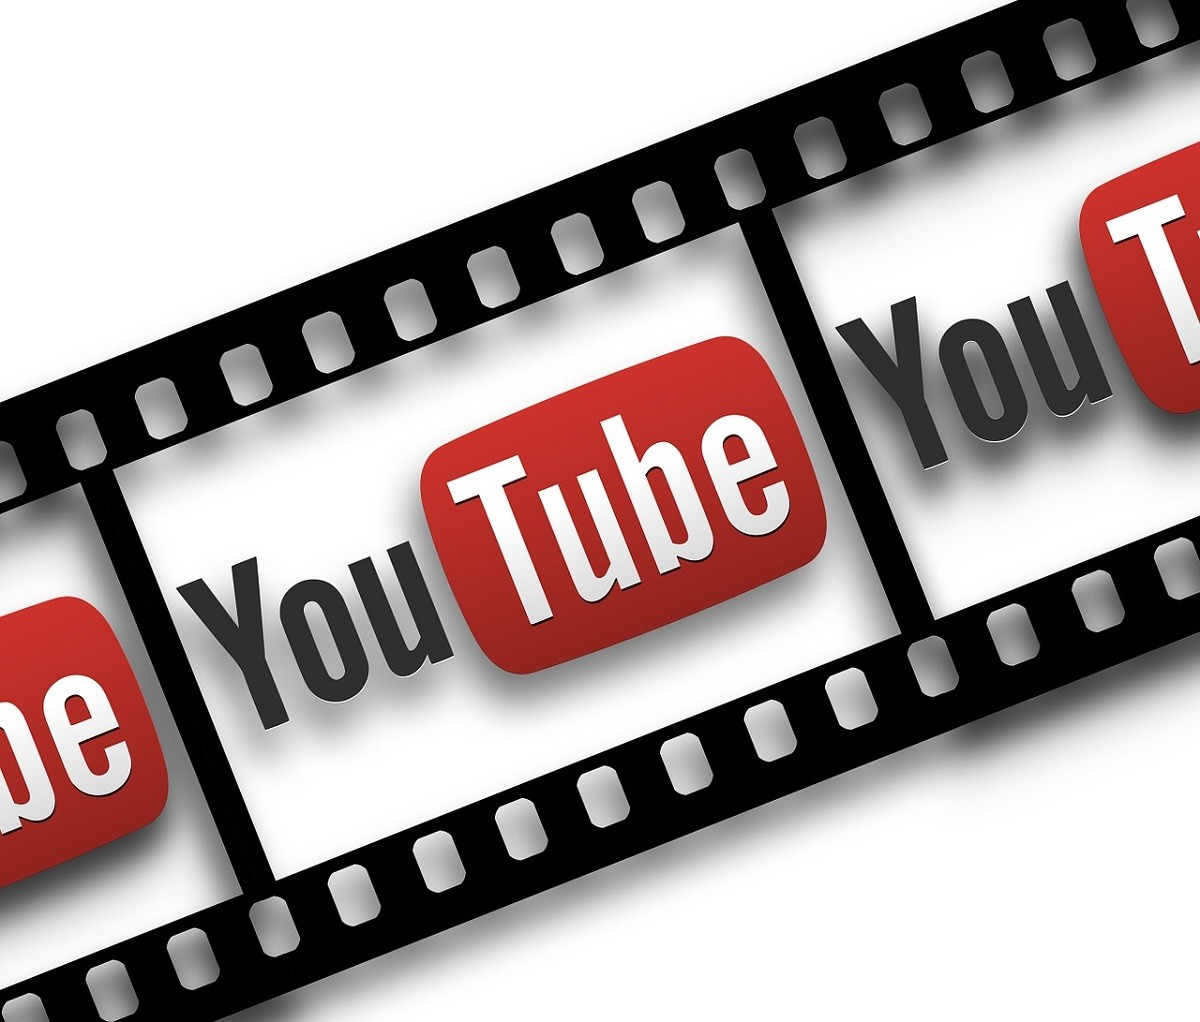 YouTube, , Television channel, Vlog, YouTube Music, Video, YouTuber, T-Series, Music, Online video platform, youtube channel, Photographic film, Text, Camera accessory, Font, Logo, Movie, Brand, Graphics